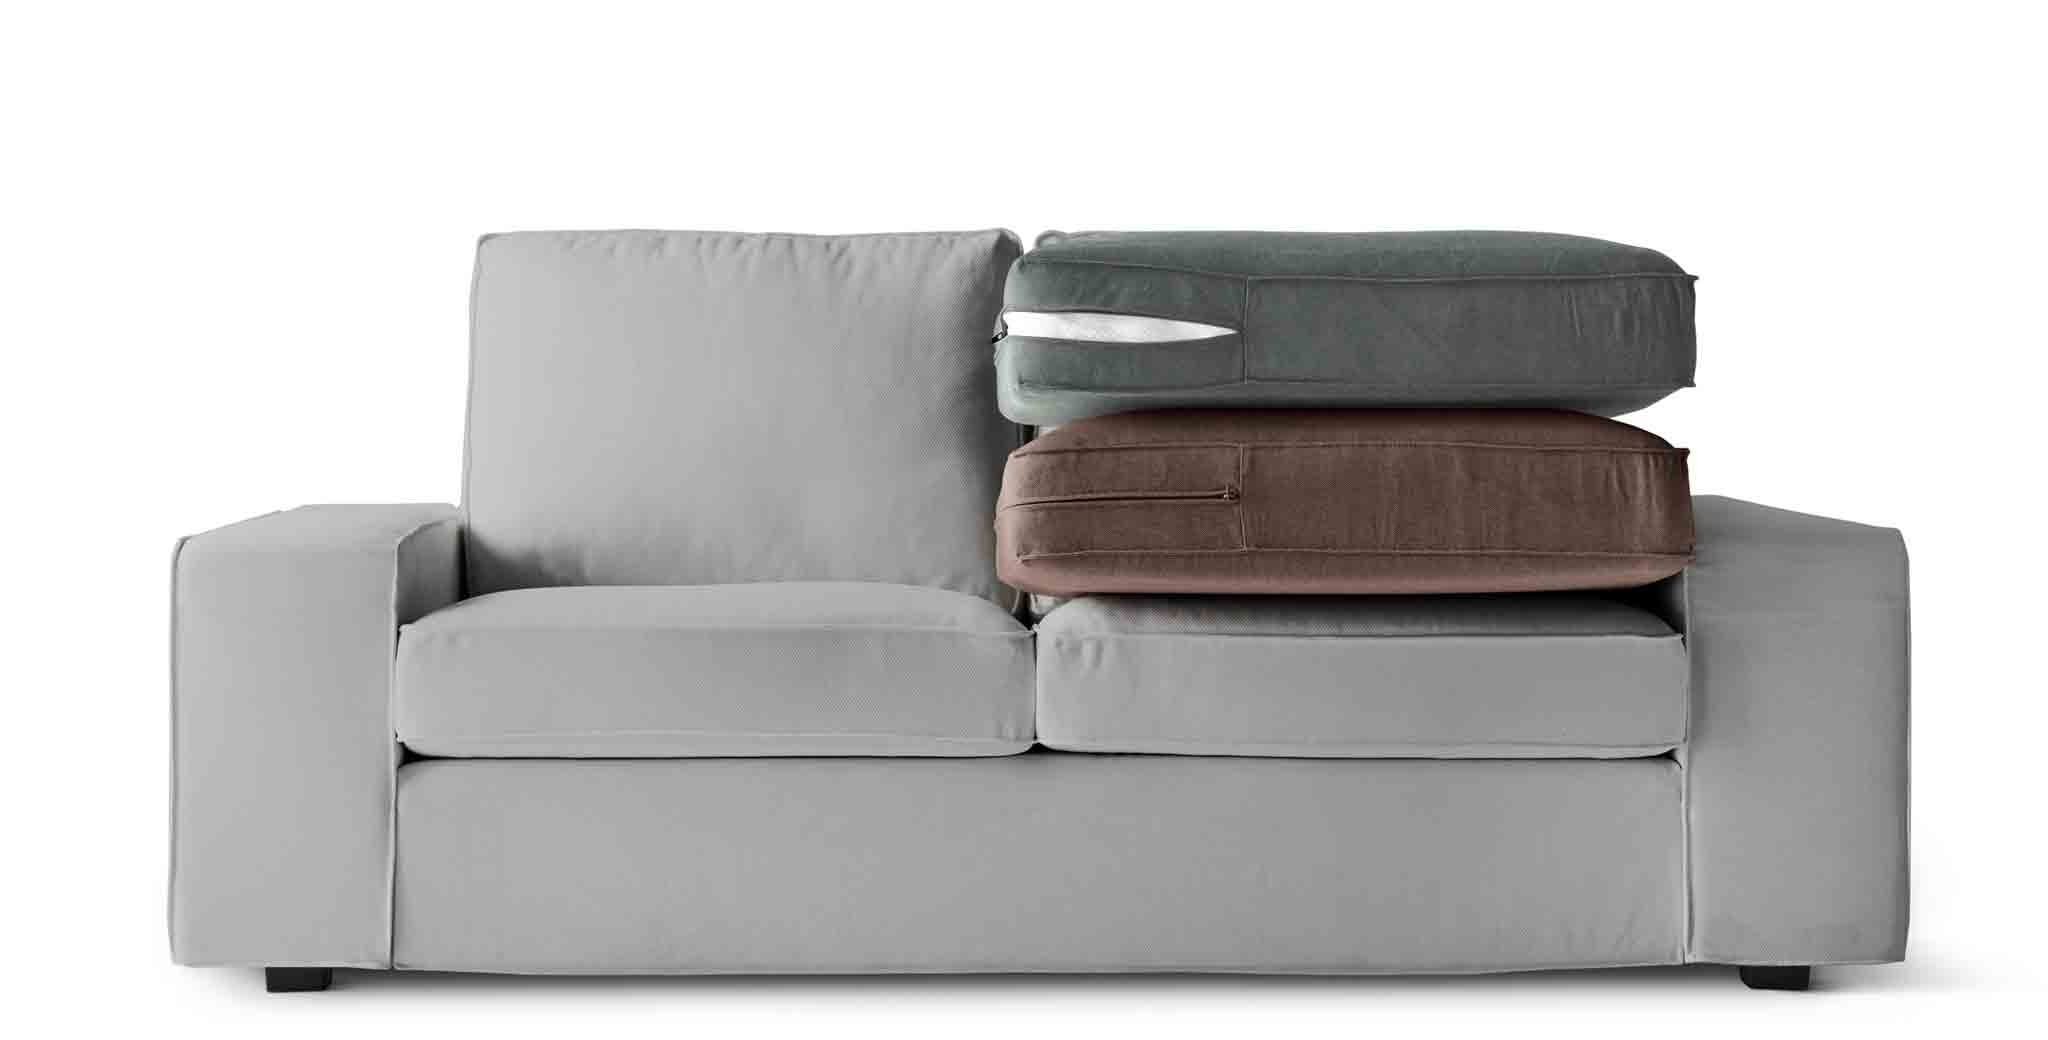 corner sofa with removable washable covers lena dunham 10 best collection of sofas cover ideas